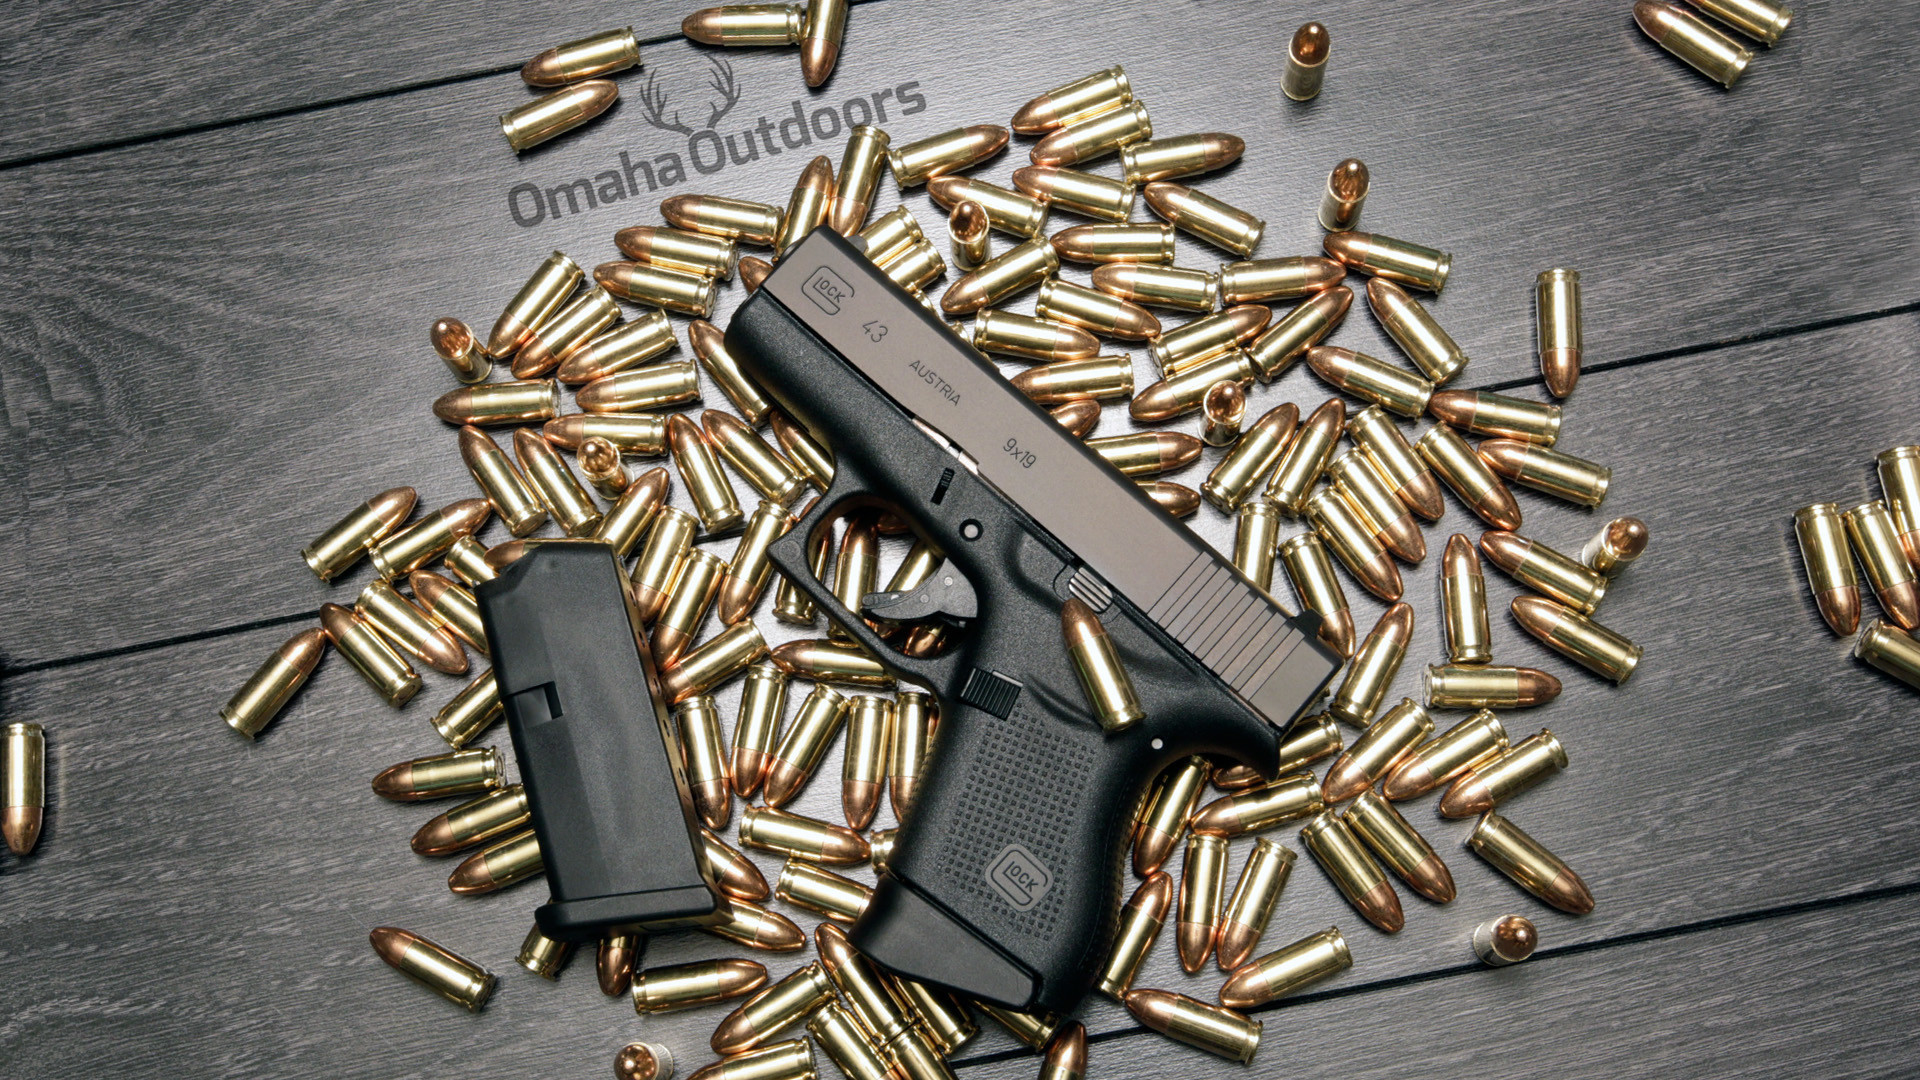 Res: 1920x1080, Glock Wallpaper New Glock 43 Wallpaper 59 Images